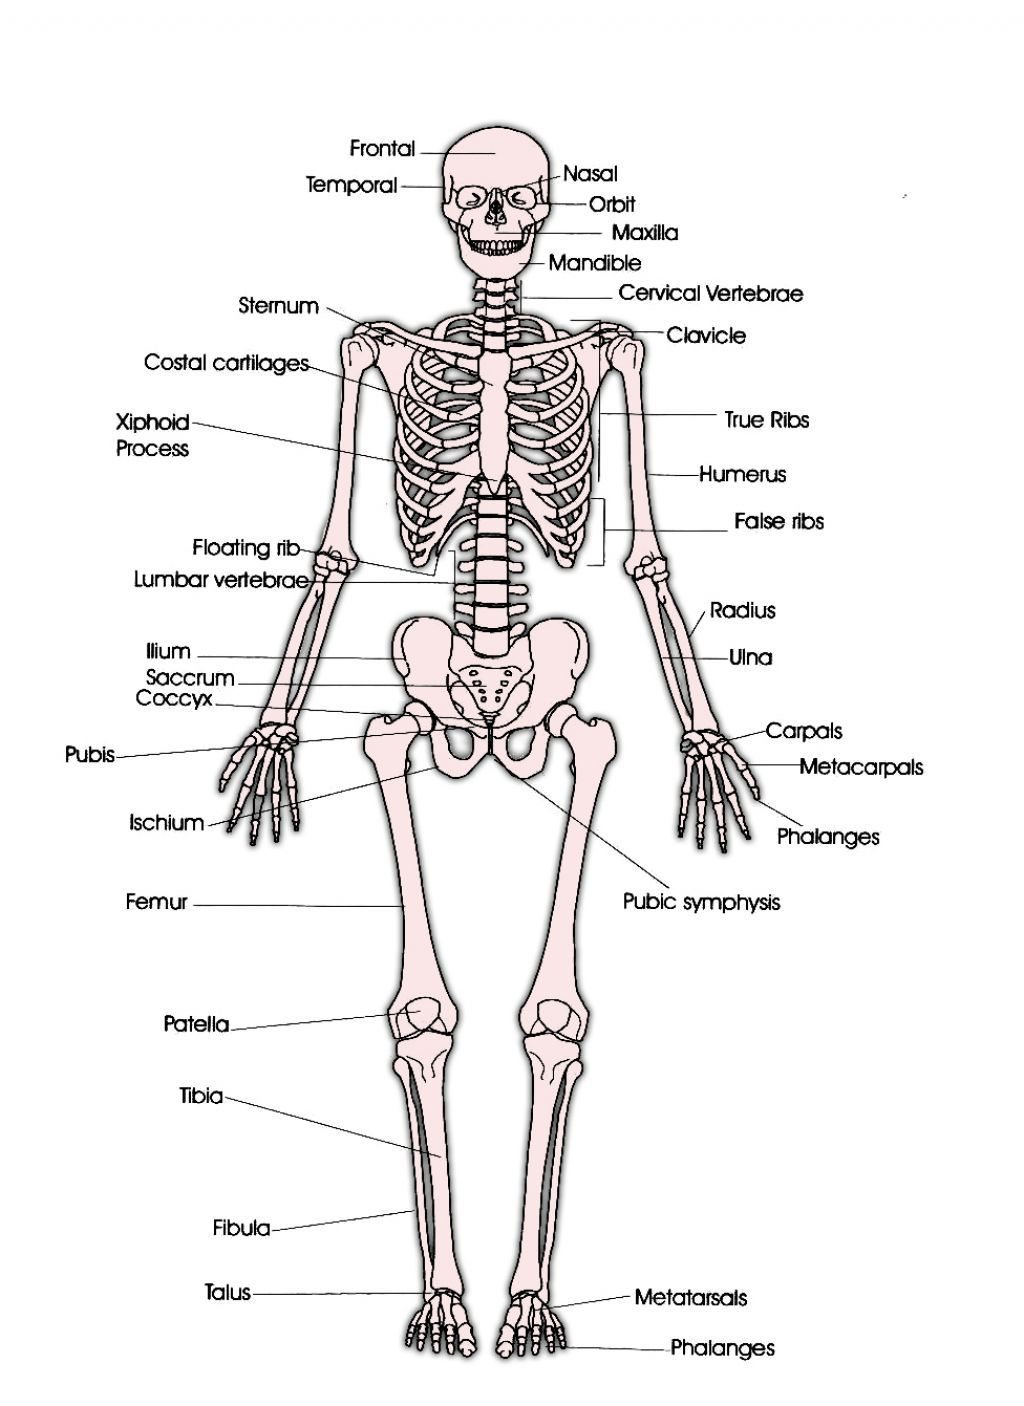 small resolution of unlabeled diagram of the human skeleton unlabeled diagram of the human skeleton skeletal system unlabeled